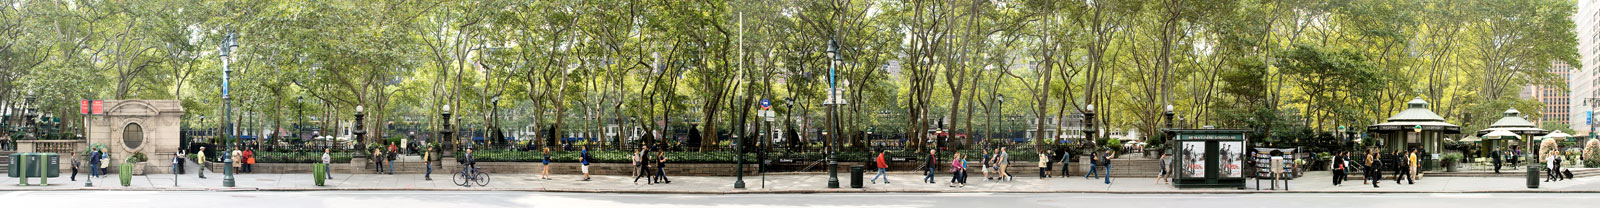 42nd St #2 (Bryant Park) by Larry Yust